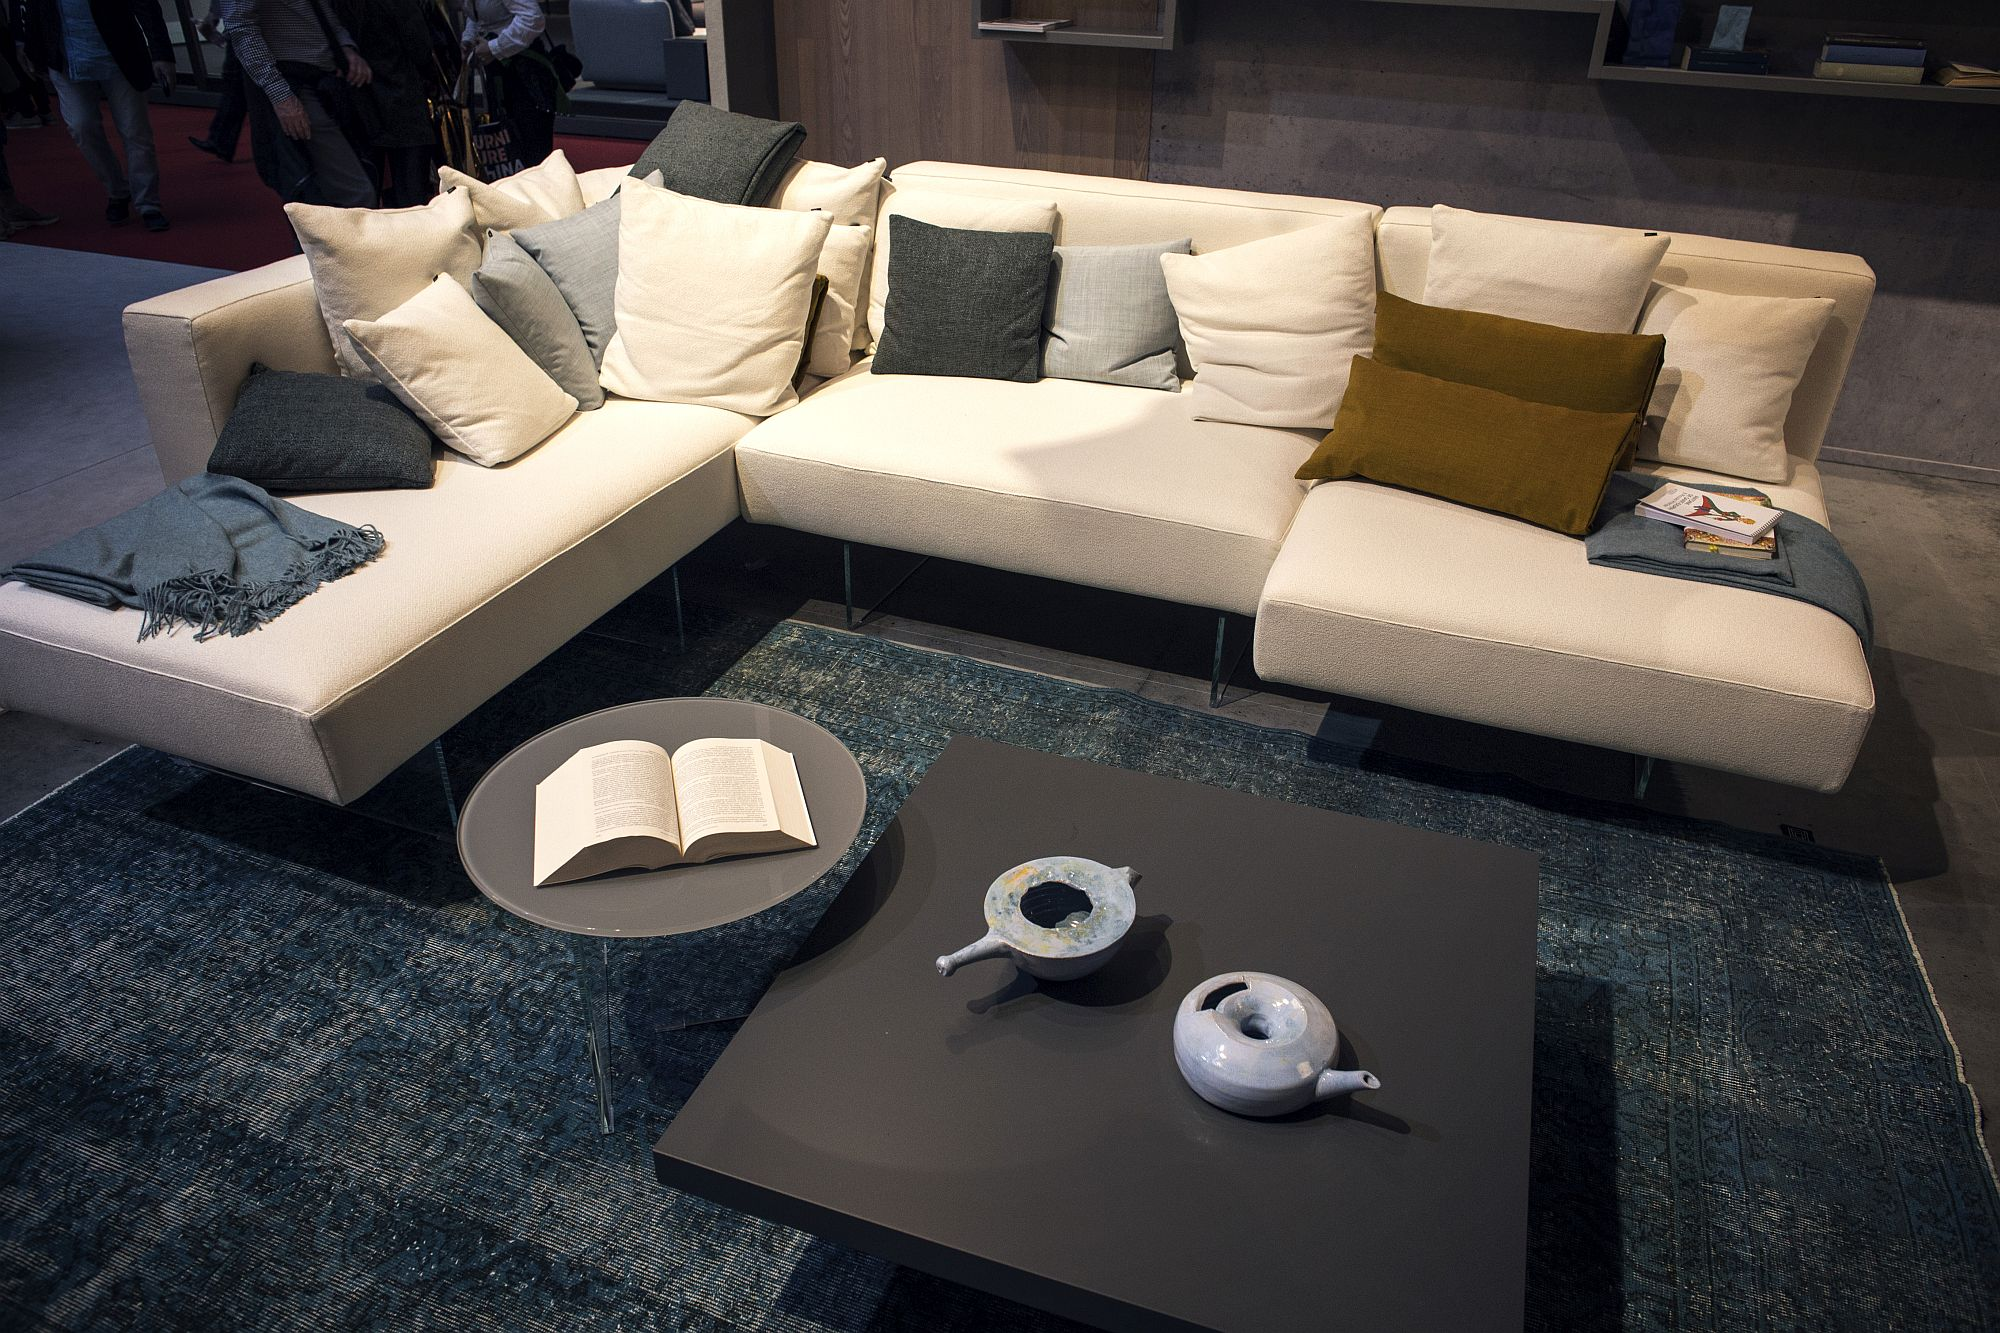 Sleek modular contemporary couch in white from Lago